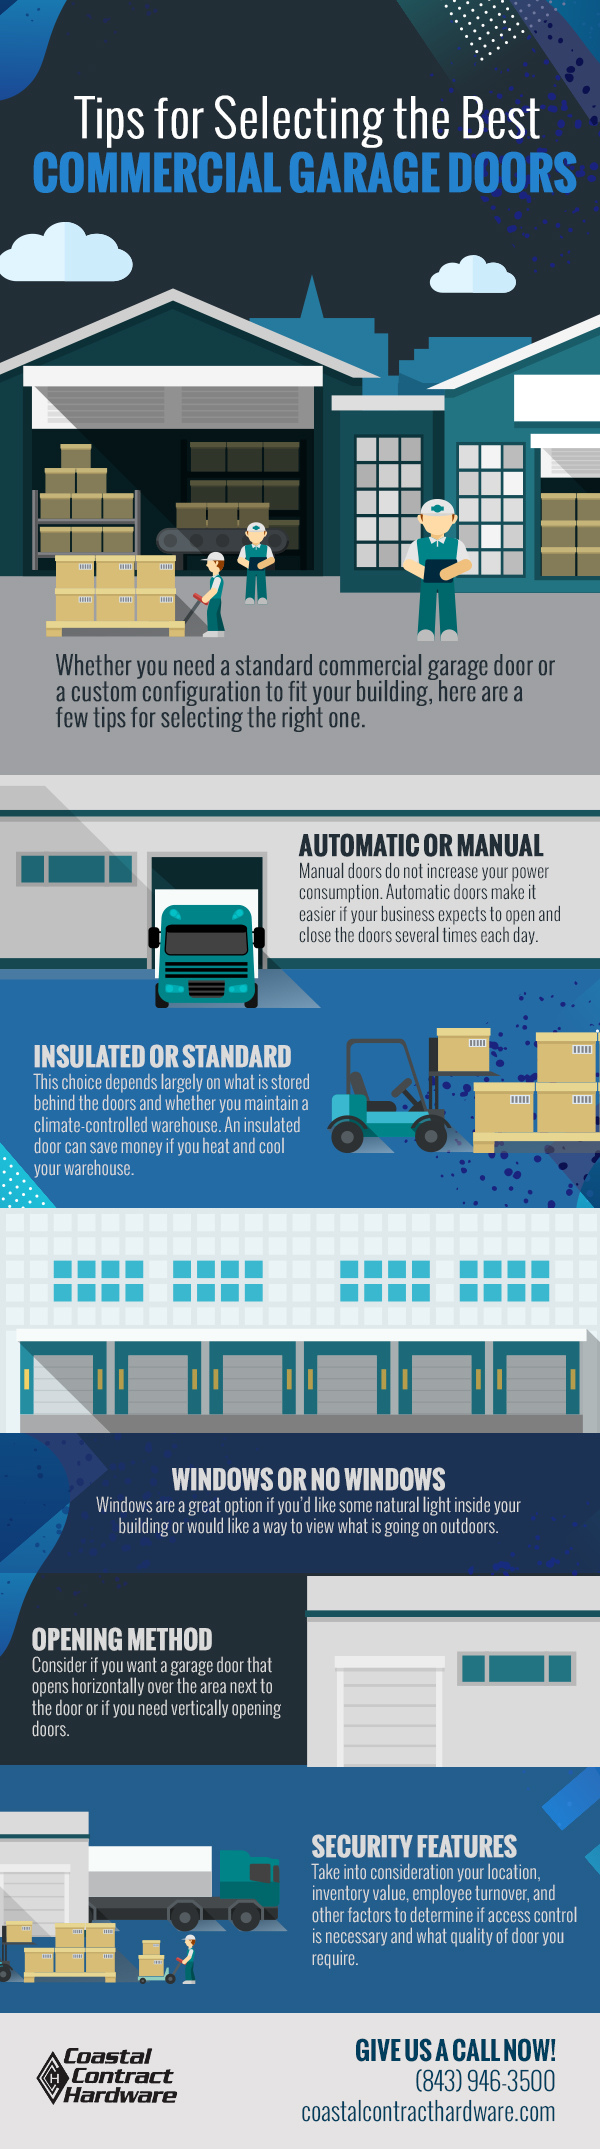 Tips for Selecting the Best Commercial Garage Doors [infographic]